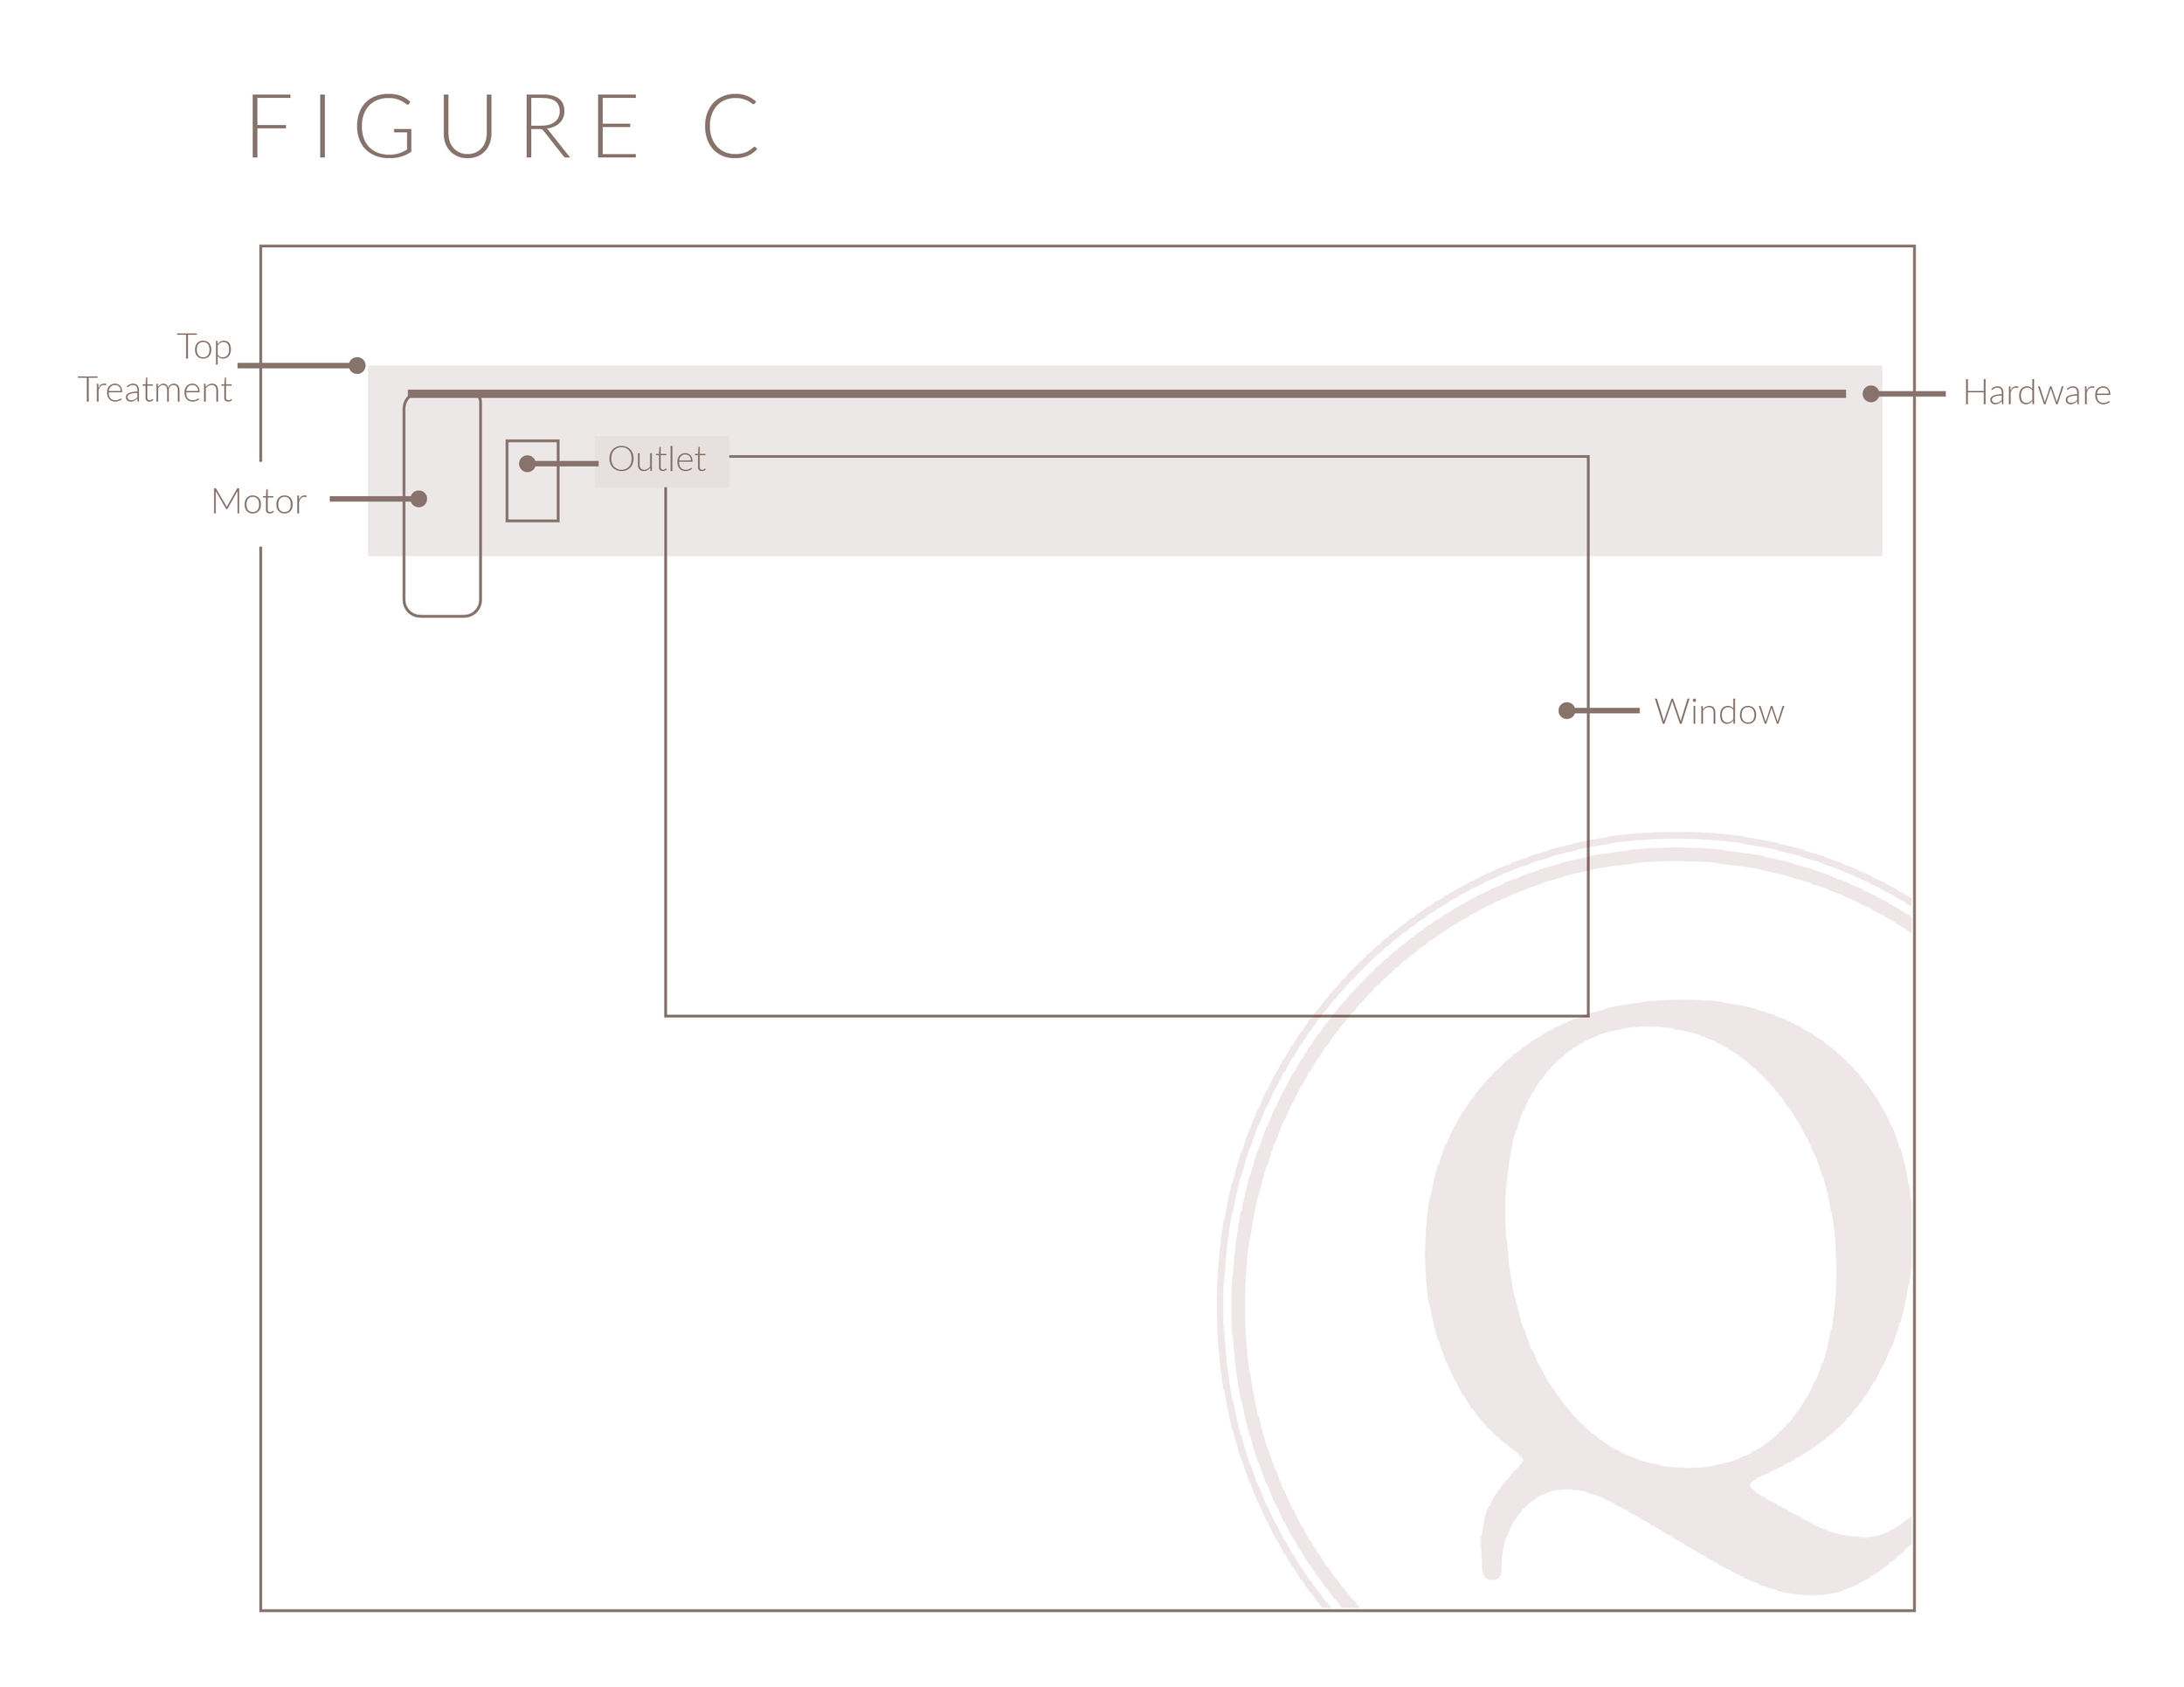 Figure C shows an outlet in the wall underneath a 'top treatment' such as a valance or cornice to work with a motorized drapery motor.